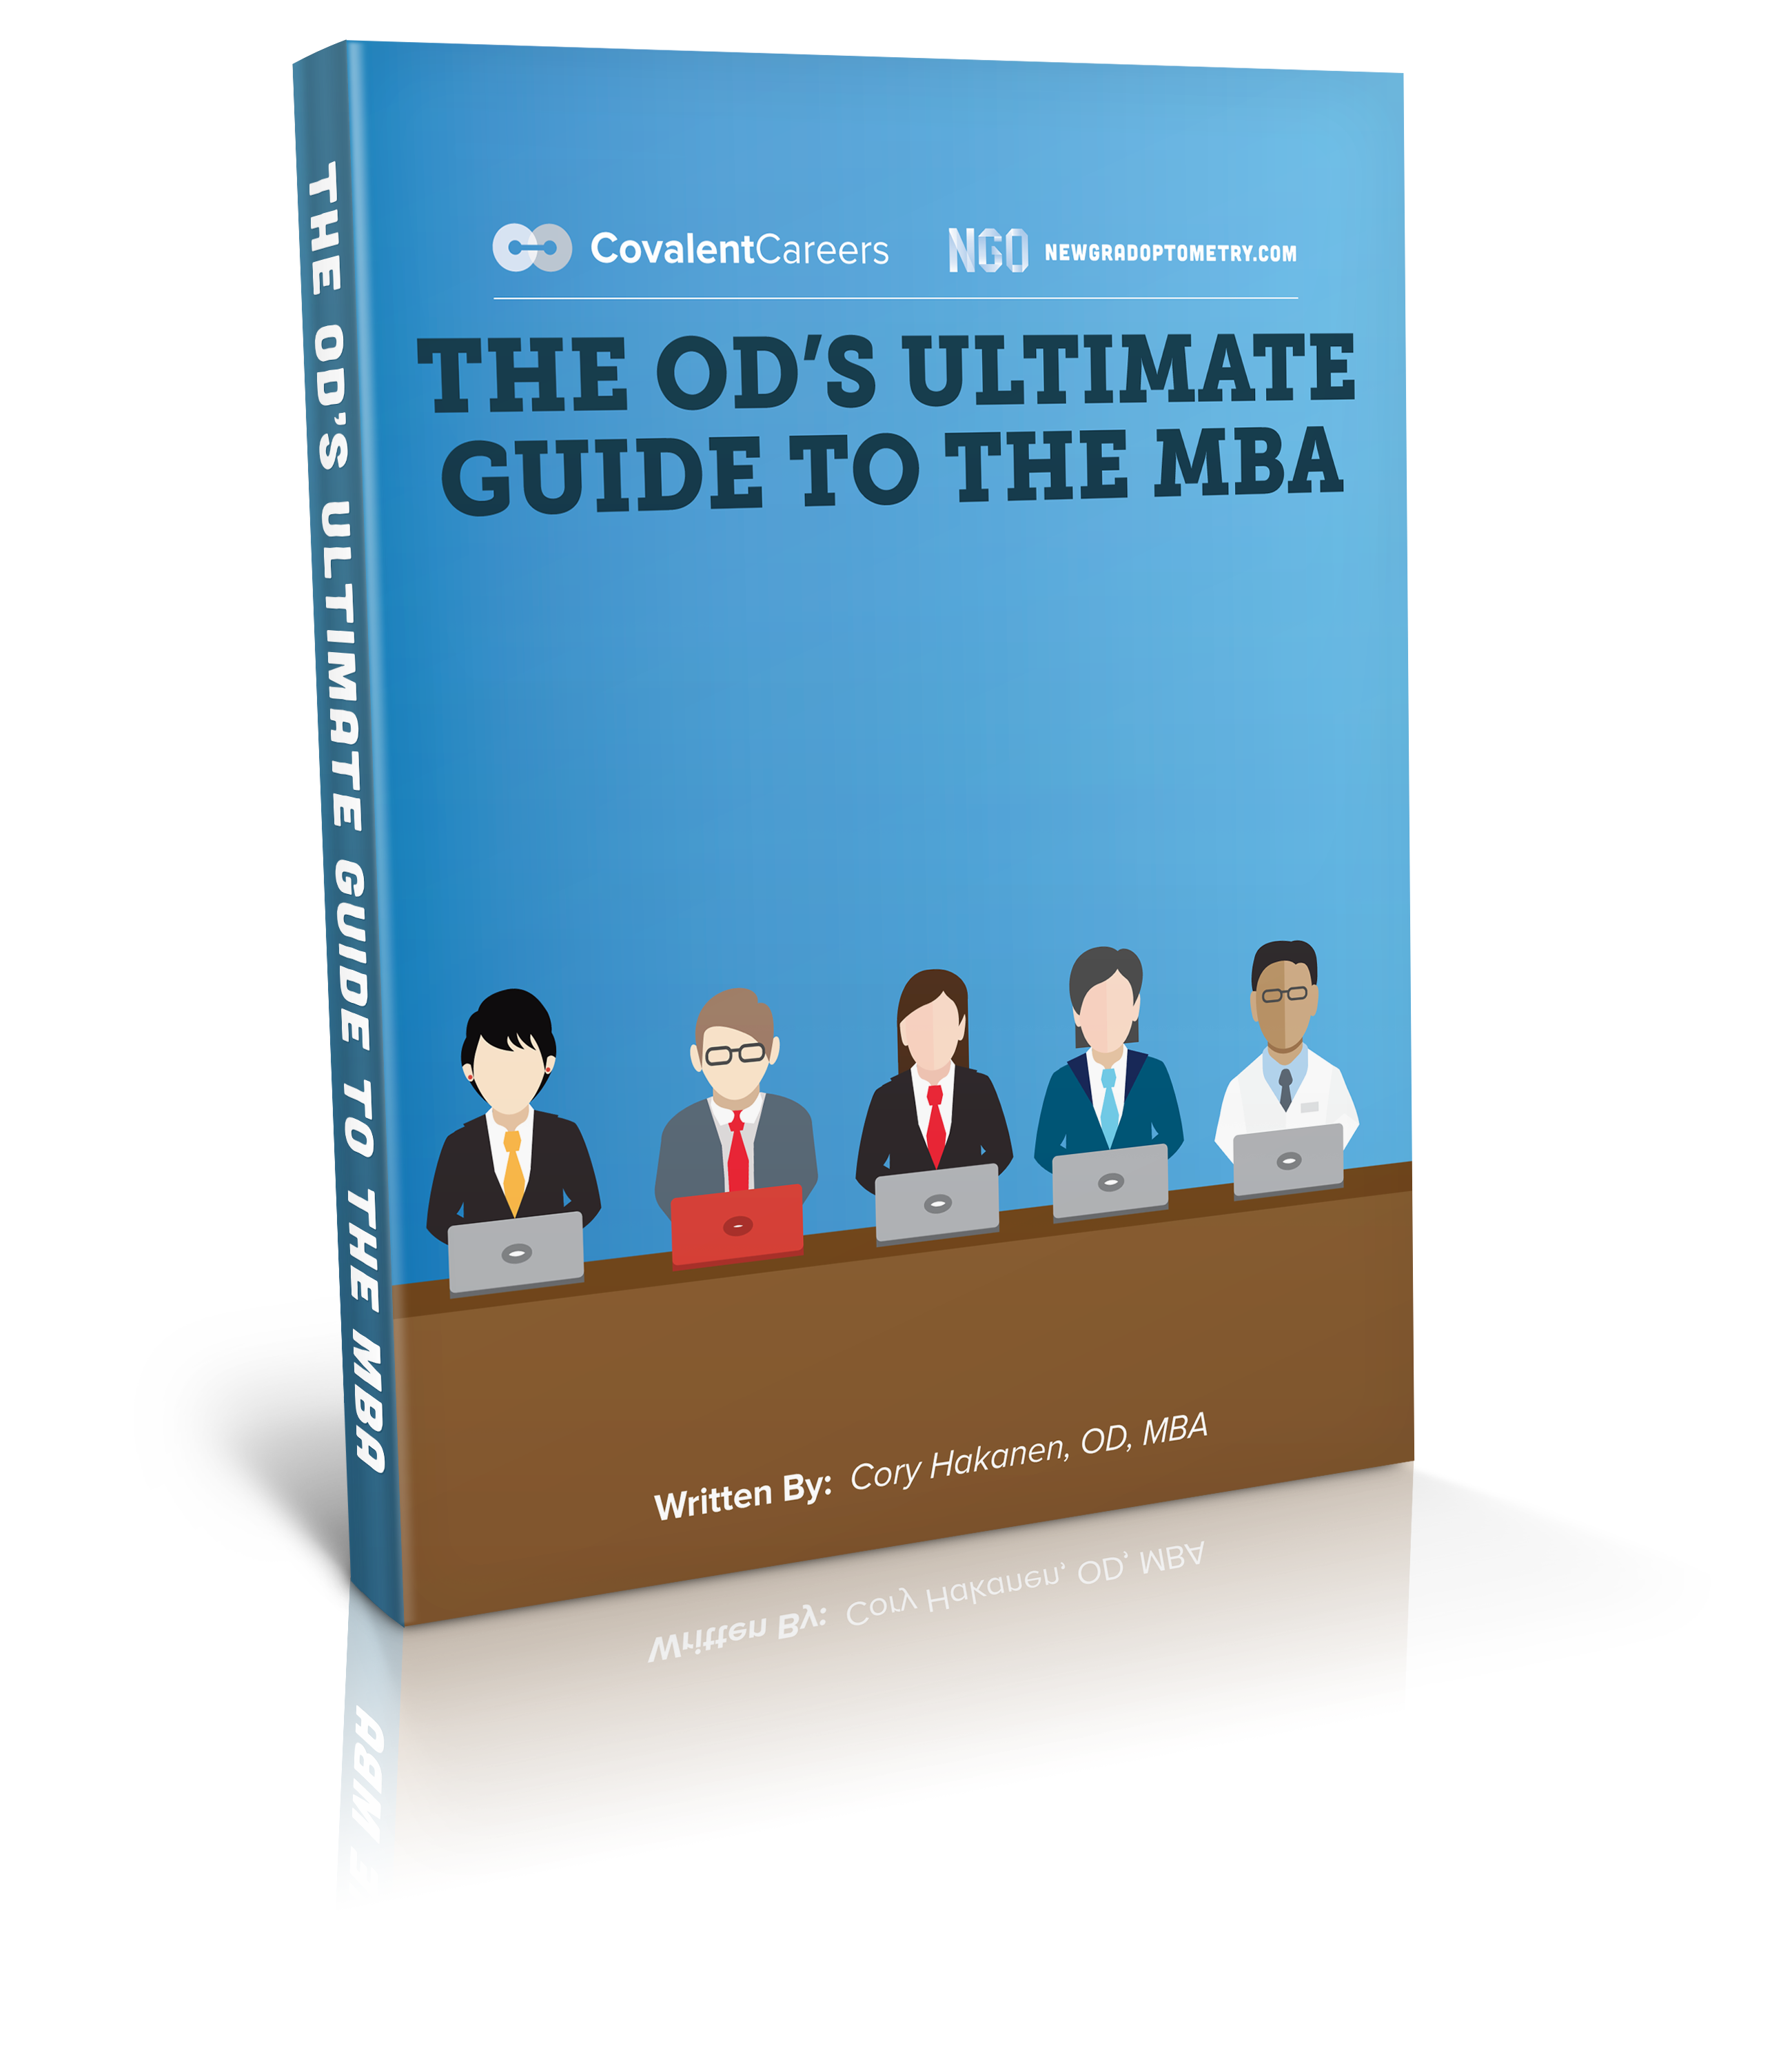 ebook mock up - The OD's Ultimate Guide to the MBA.png